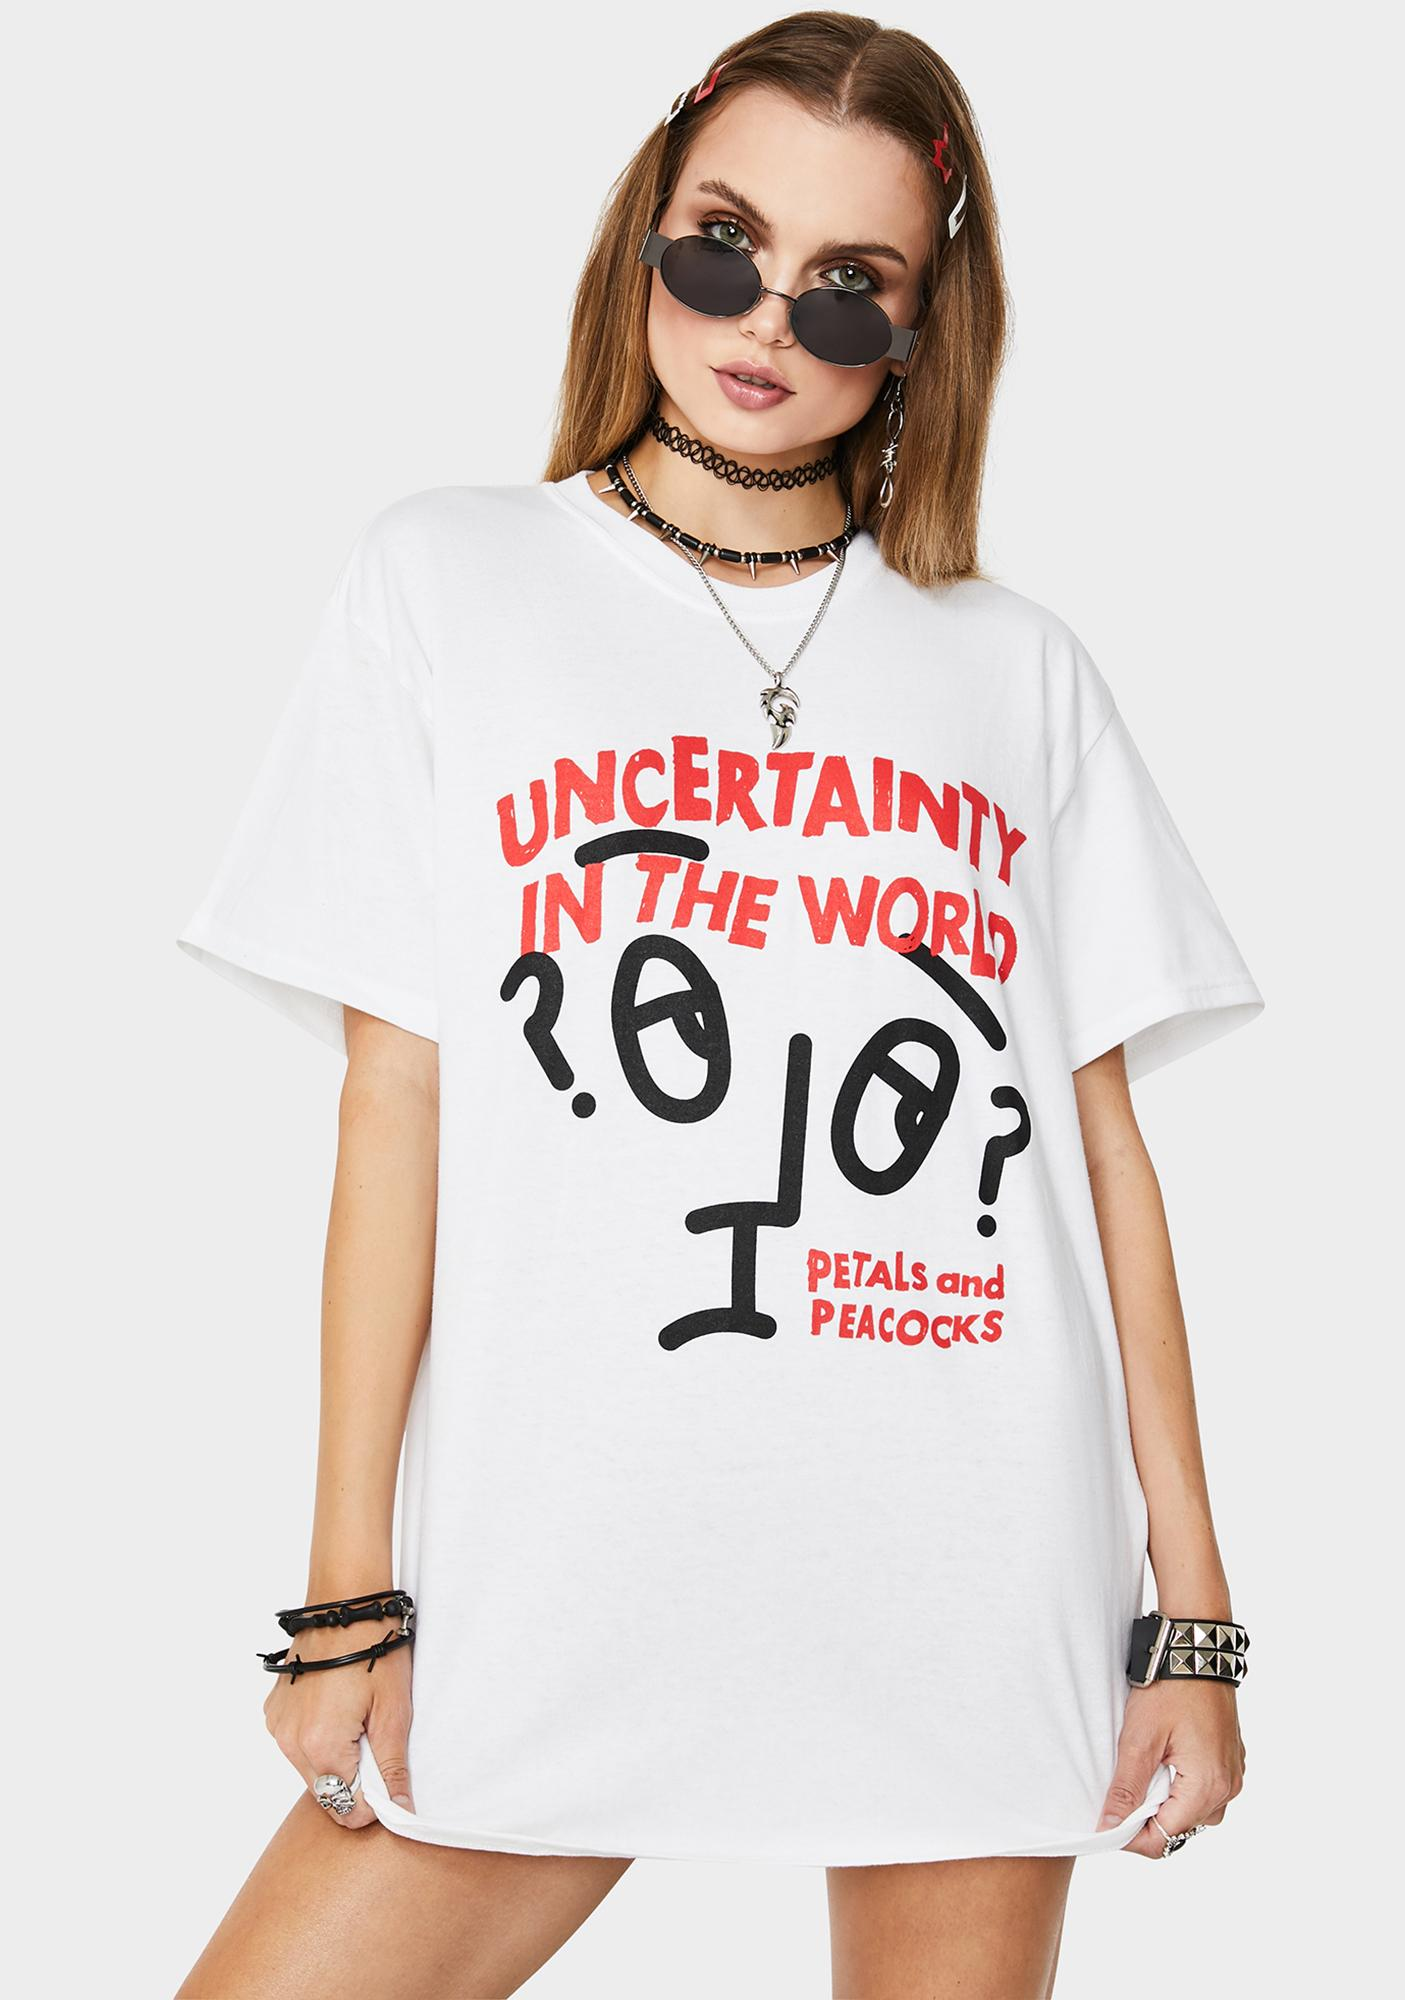 Petals and Peacocks Uncertainty Graphic Tee